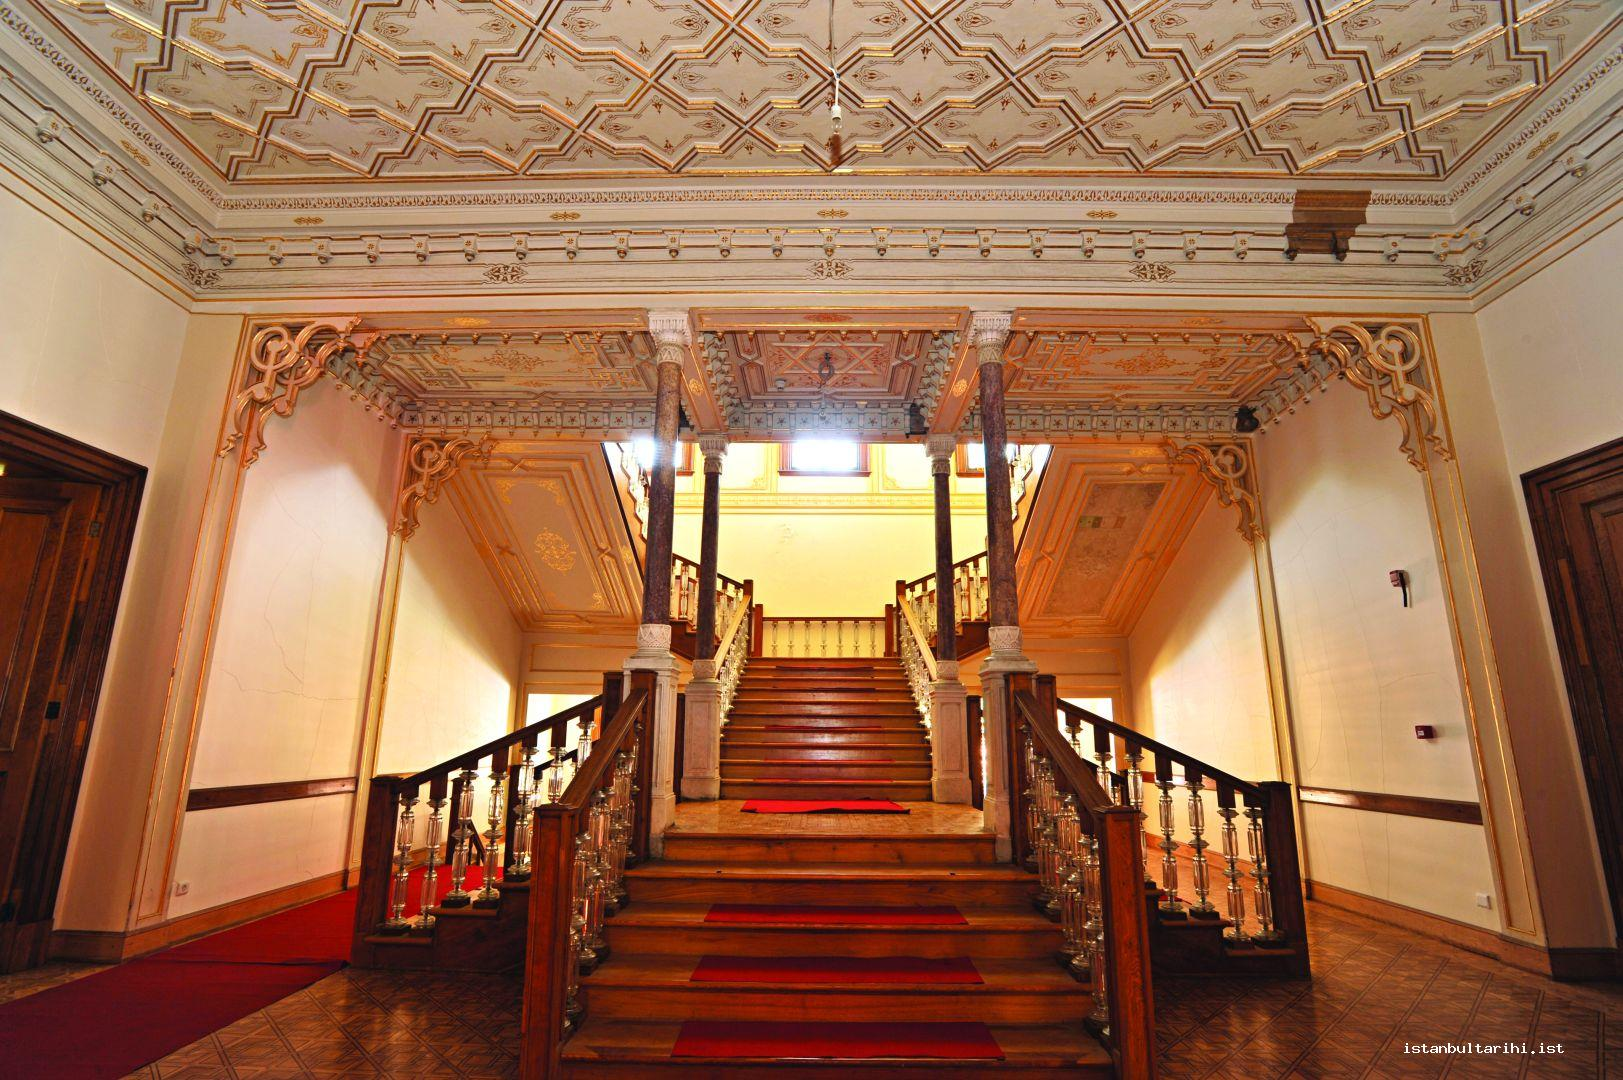 11- The stairs to the second floor of Mabeyn Mansion